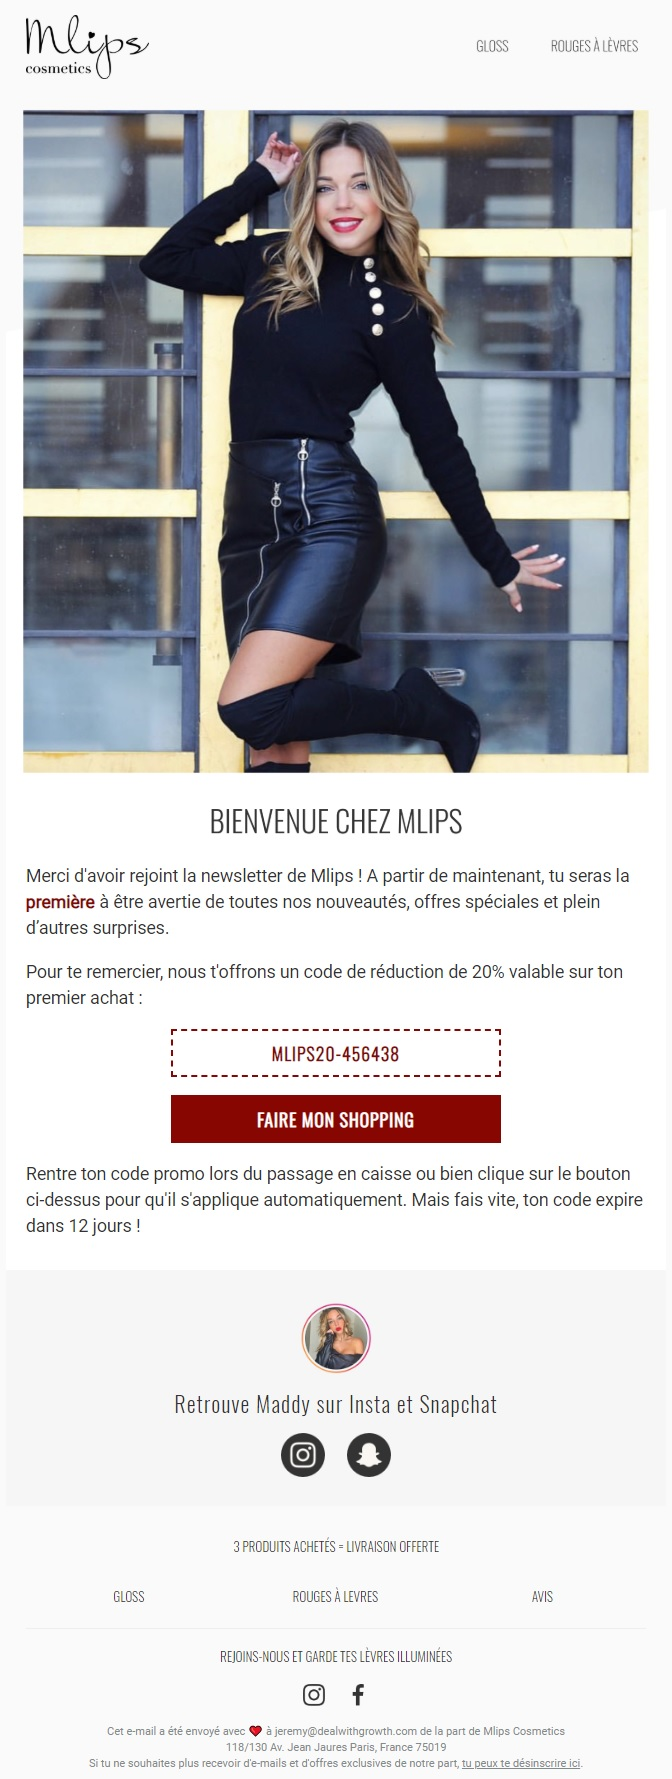 Welcome email from Mlips Cosmetics